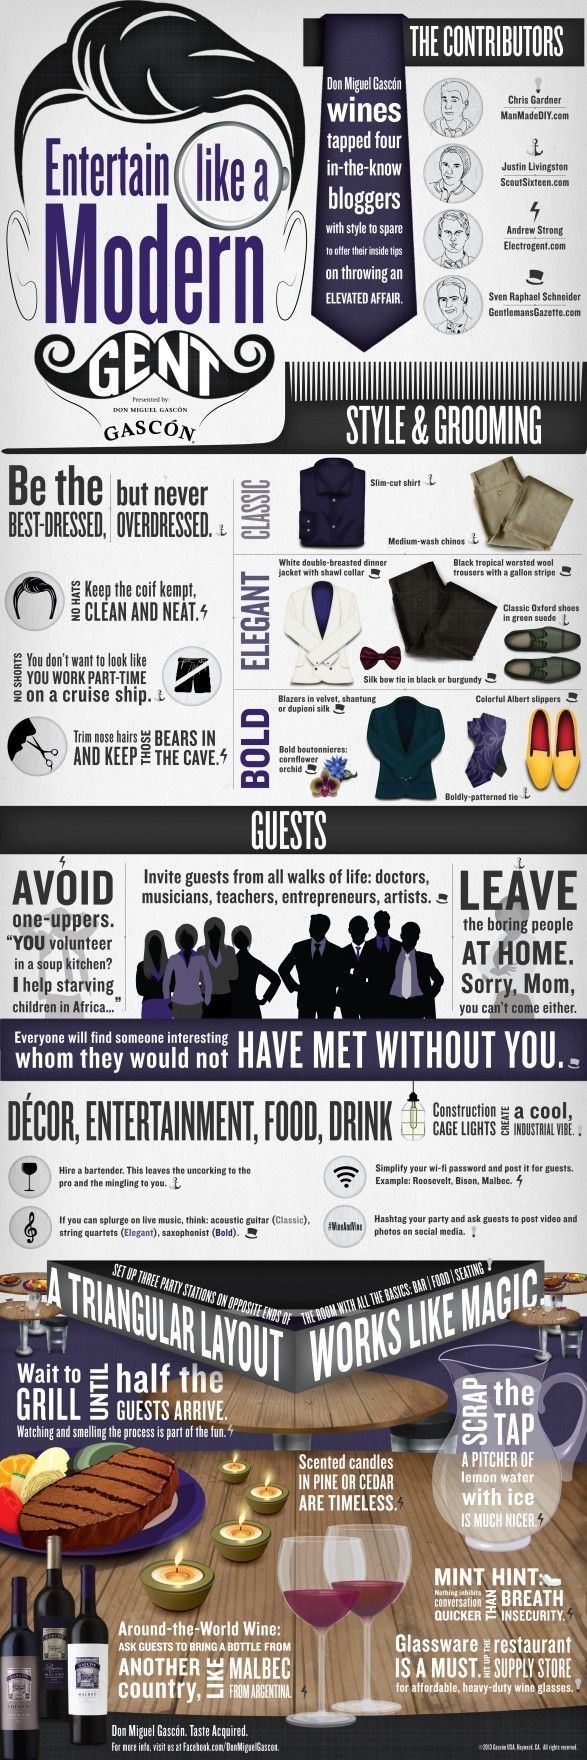 How to entertain like a Modern Gent